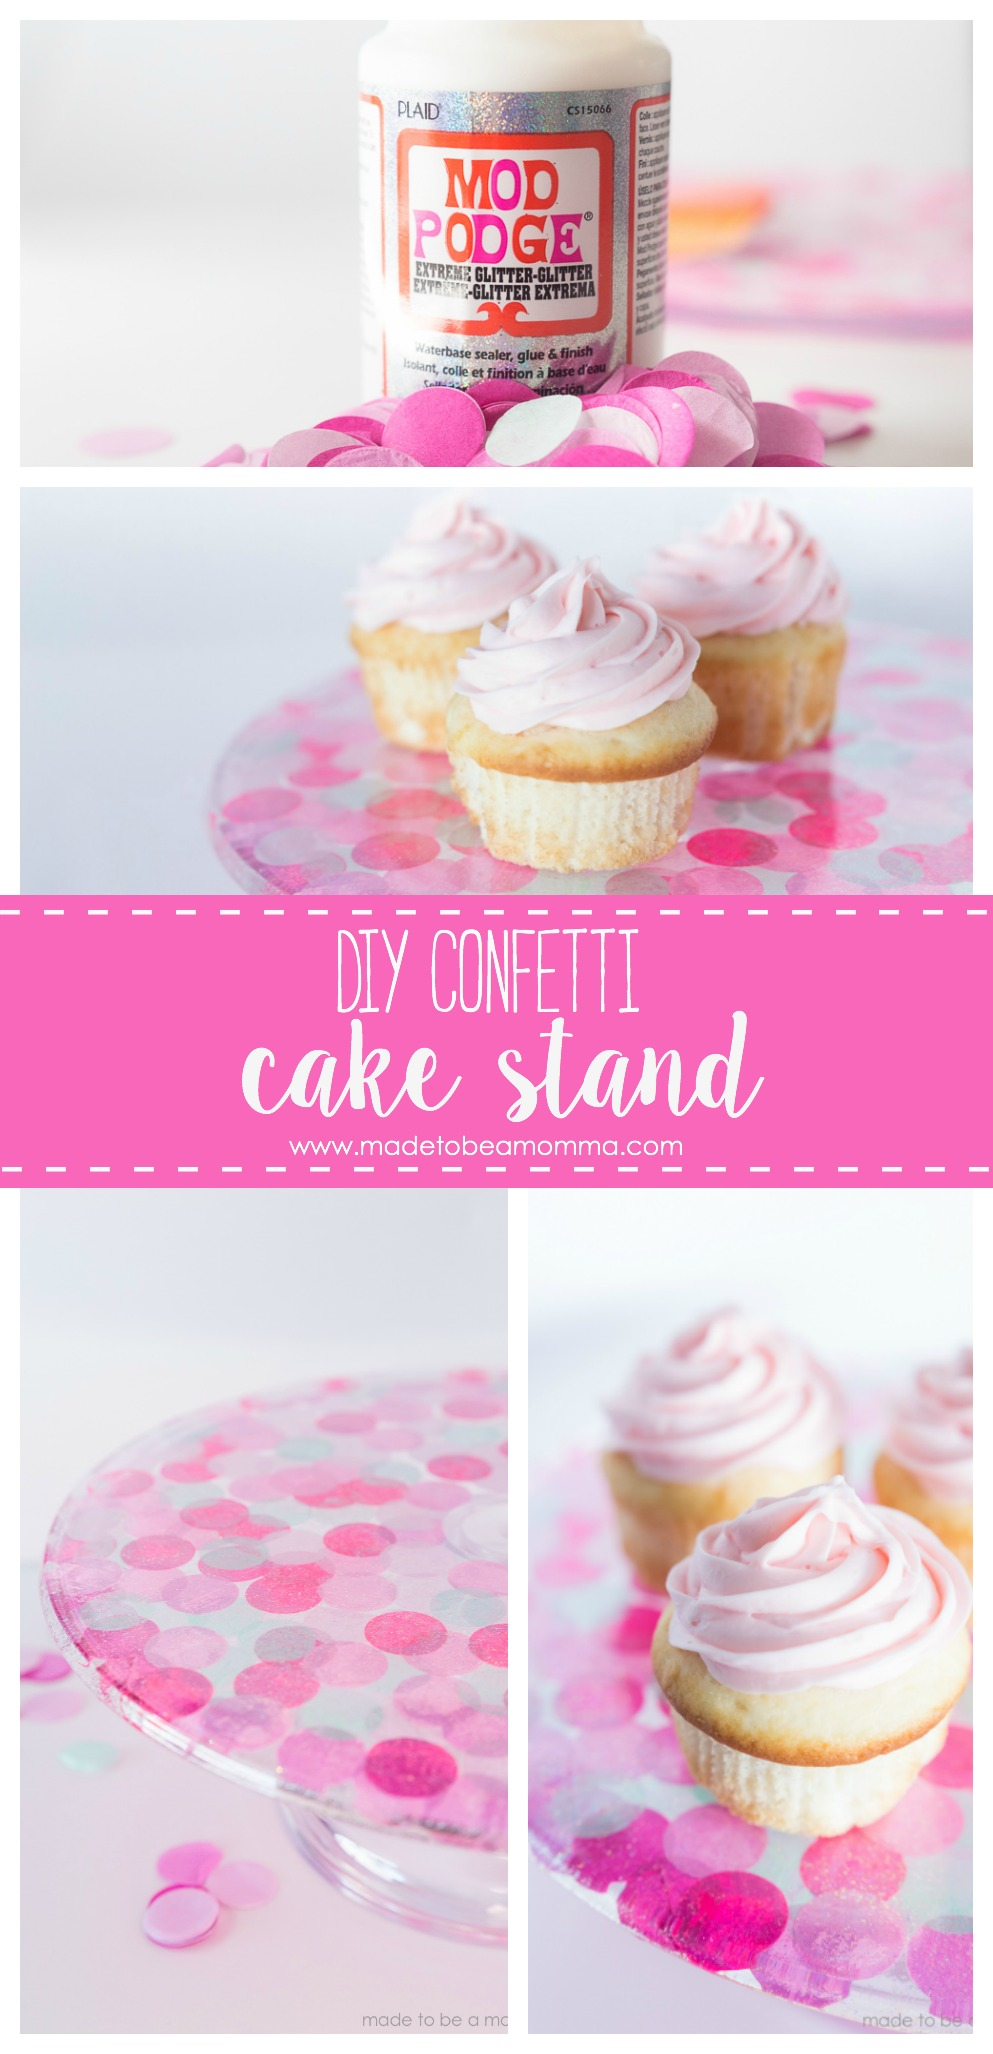 Diy Confetti Cake Stand: a simple diy craft project that will take your parties to the next level! All you need is some Mod Podge, tissue paper confetti and a plastic cake stand!